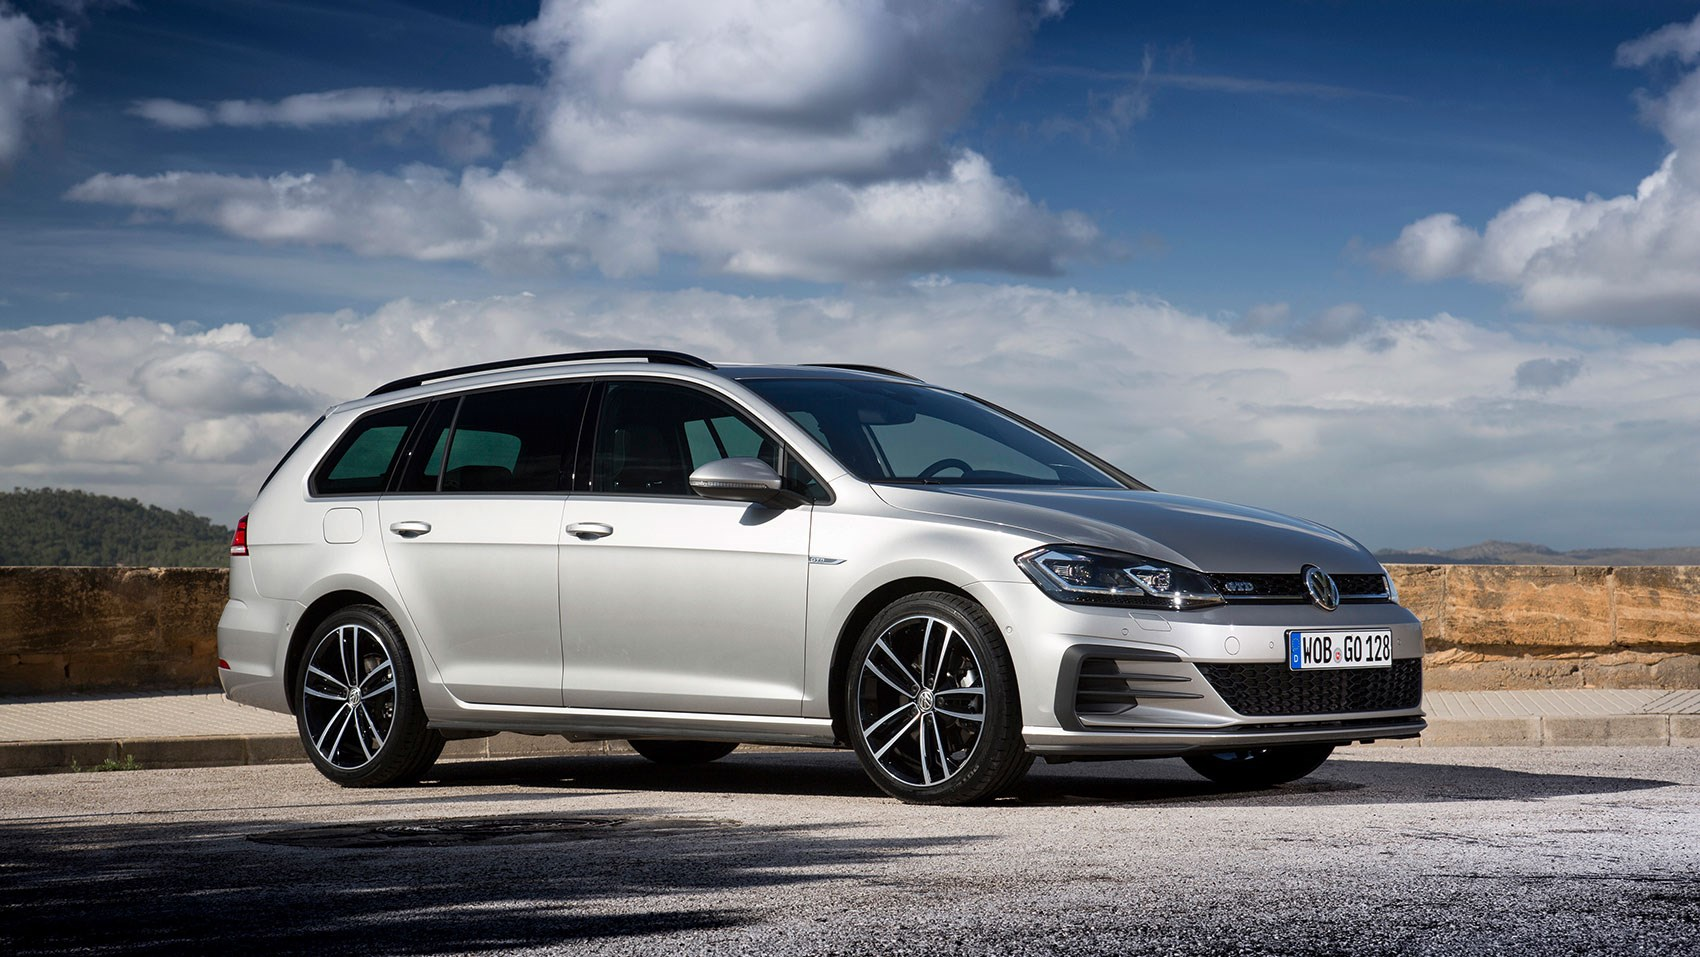 vw golf gtd estate 2017 review by car magazine. Black Bedroom Furniture Sets. Home Design Ideas